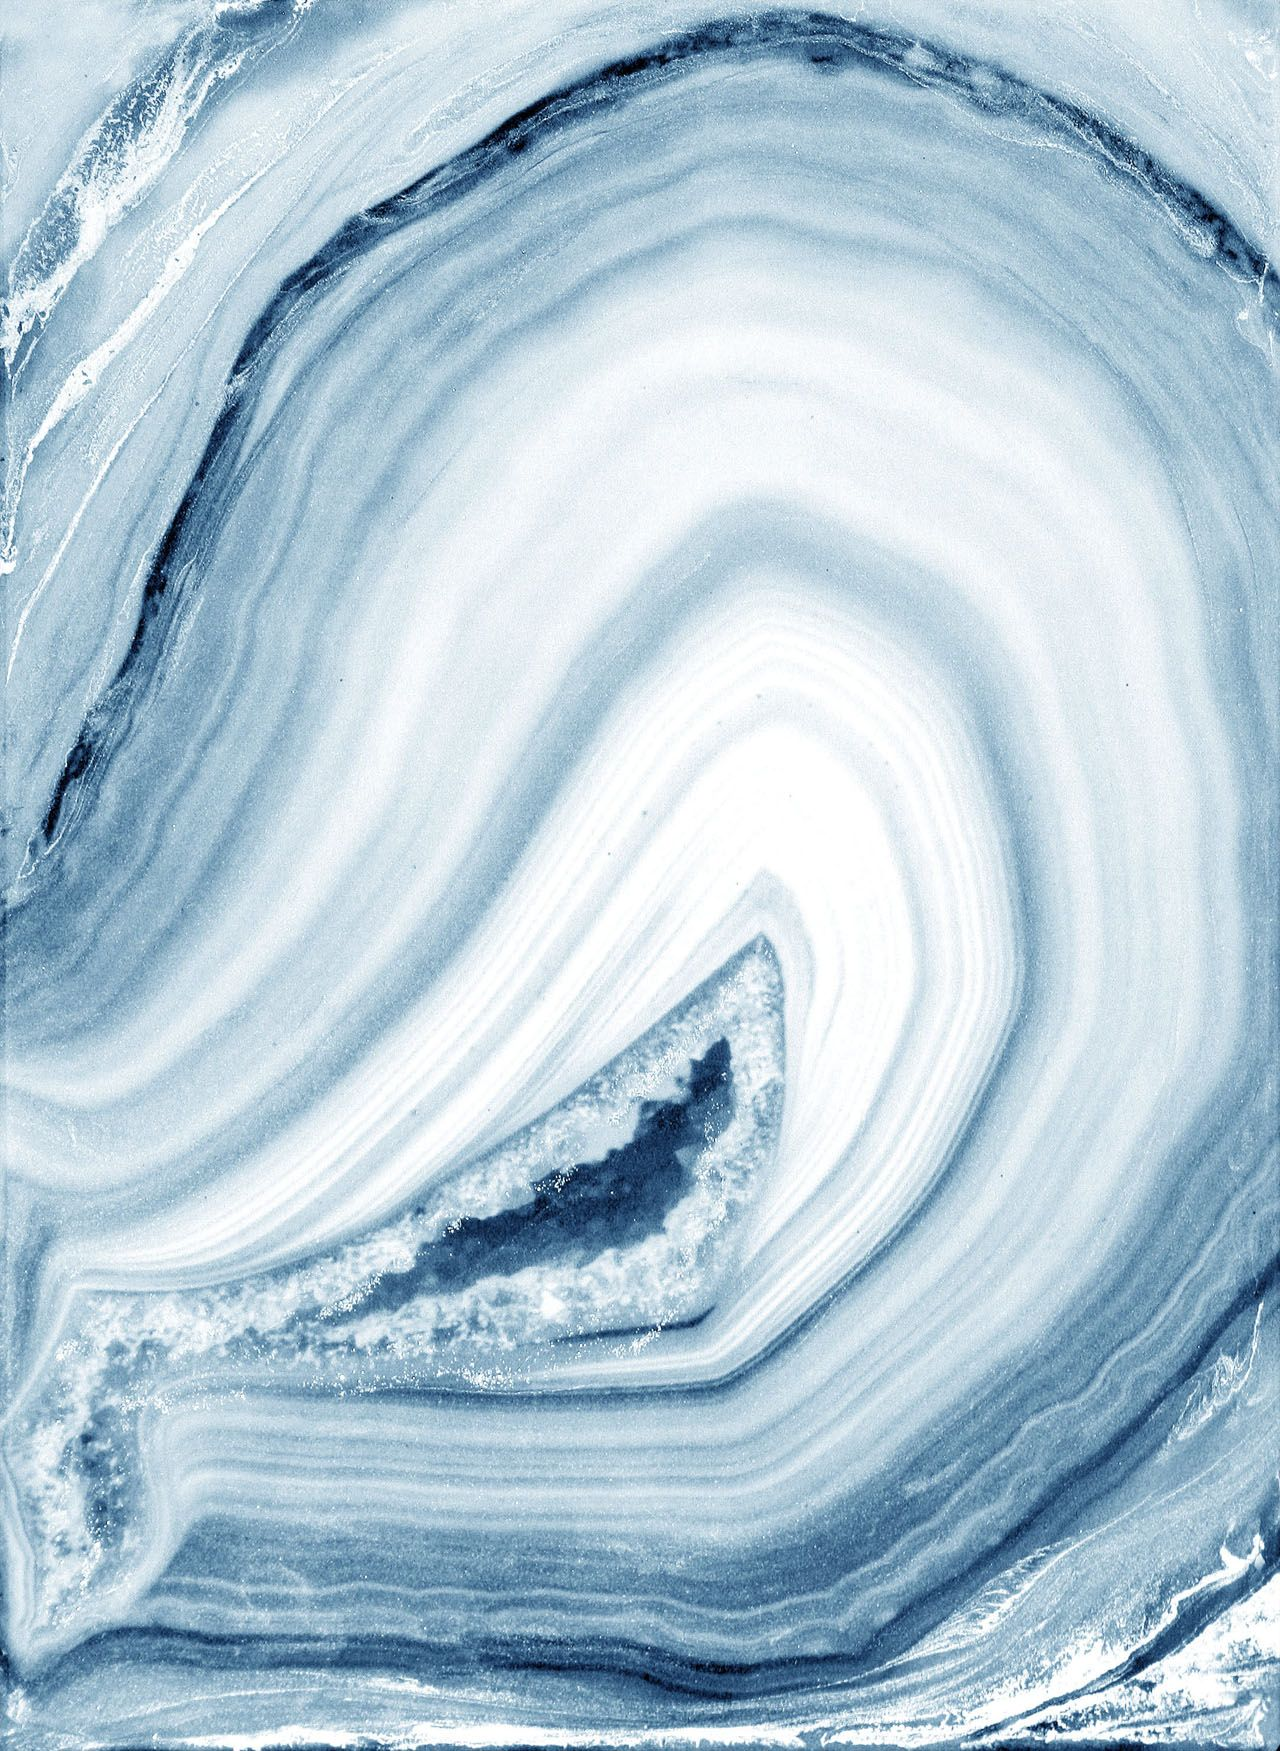 Pin By Samya 3647 On Agate Wallpapers Art Painting